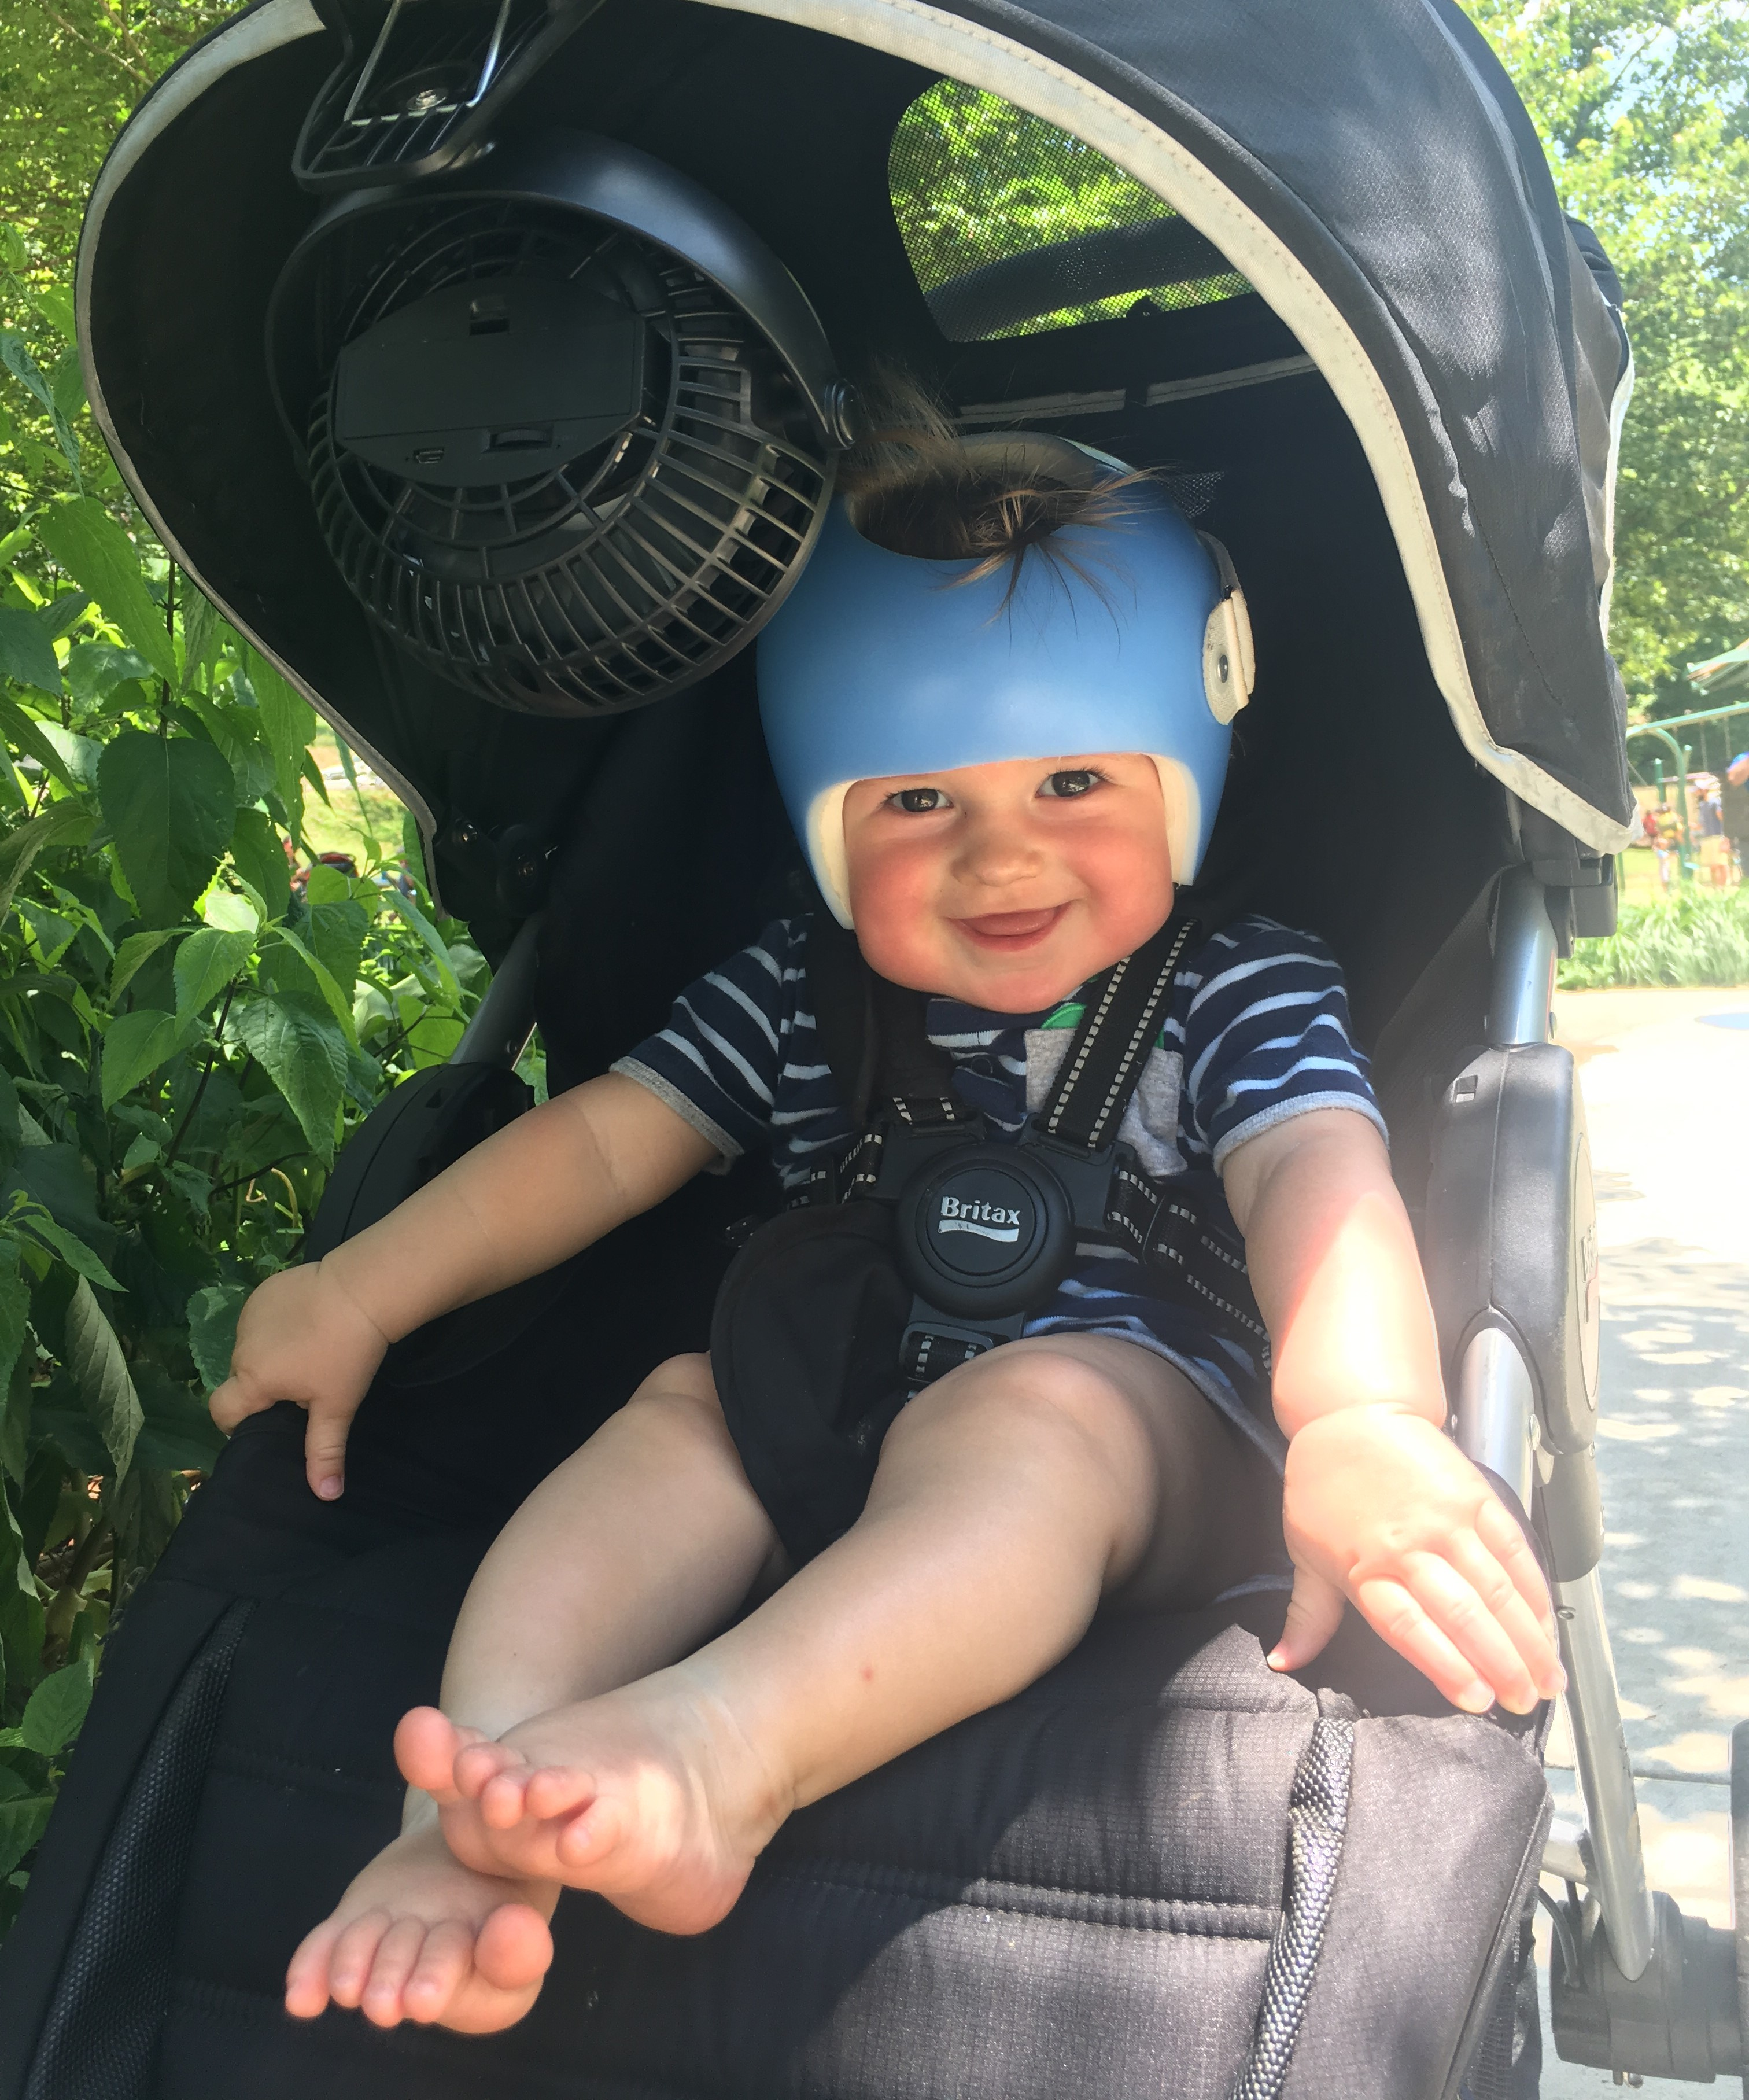 Plagiocephaly and a baby helmet fan